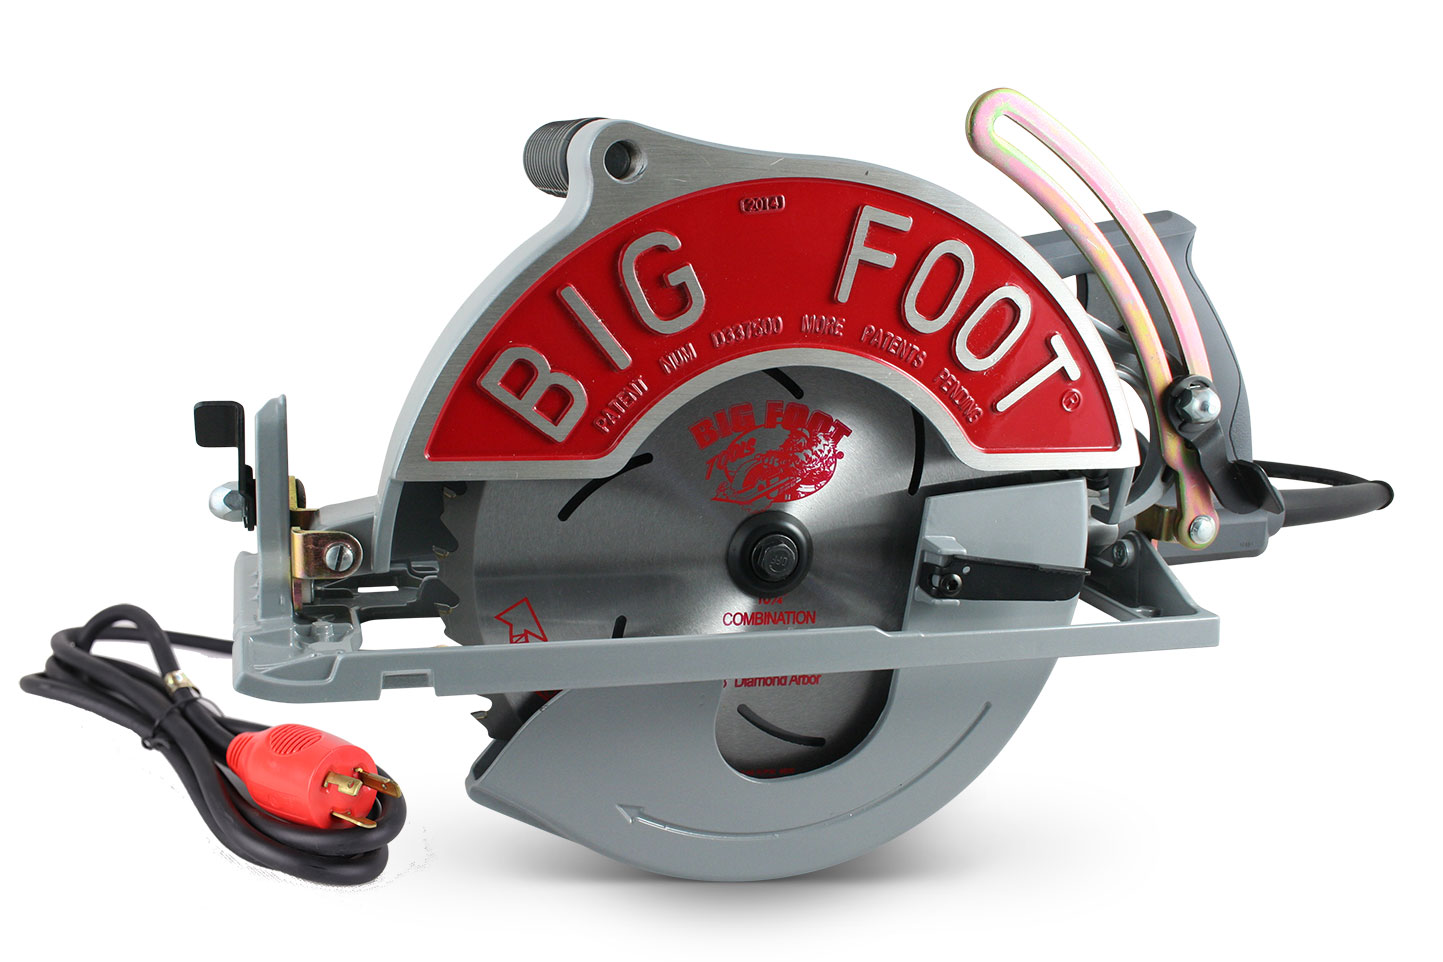 The Original 10-1/4 Big Foot Beam Saw w/Twist Lock Cord